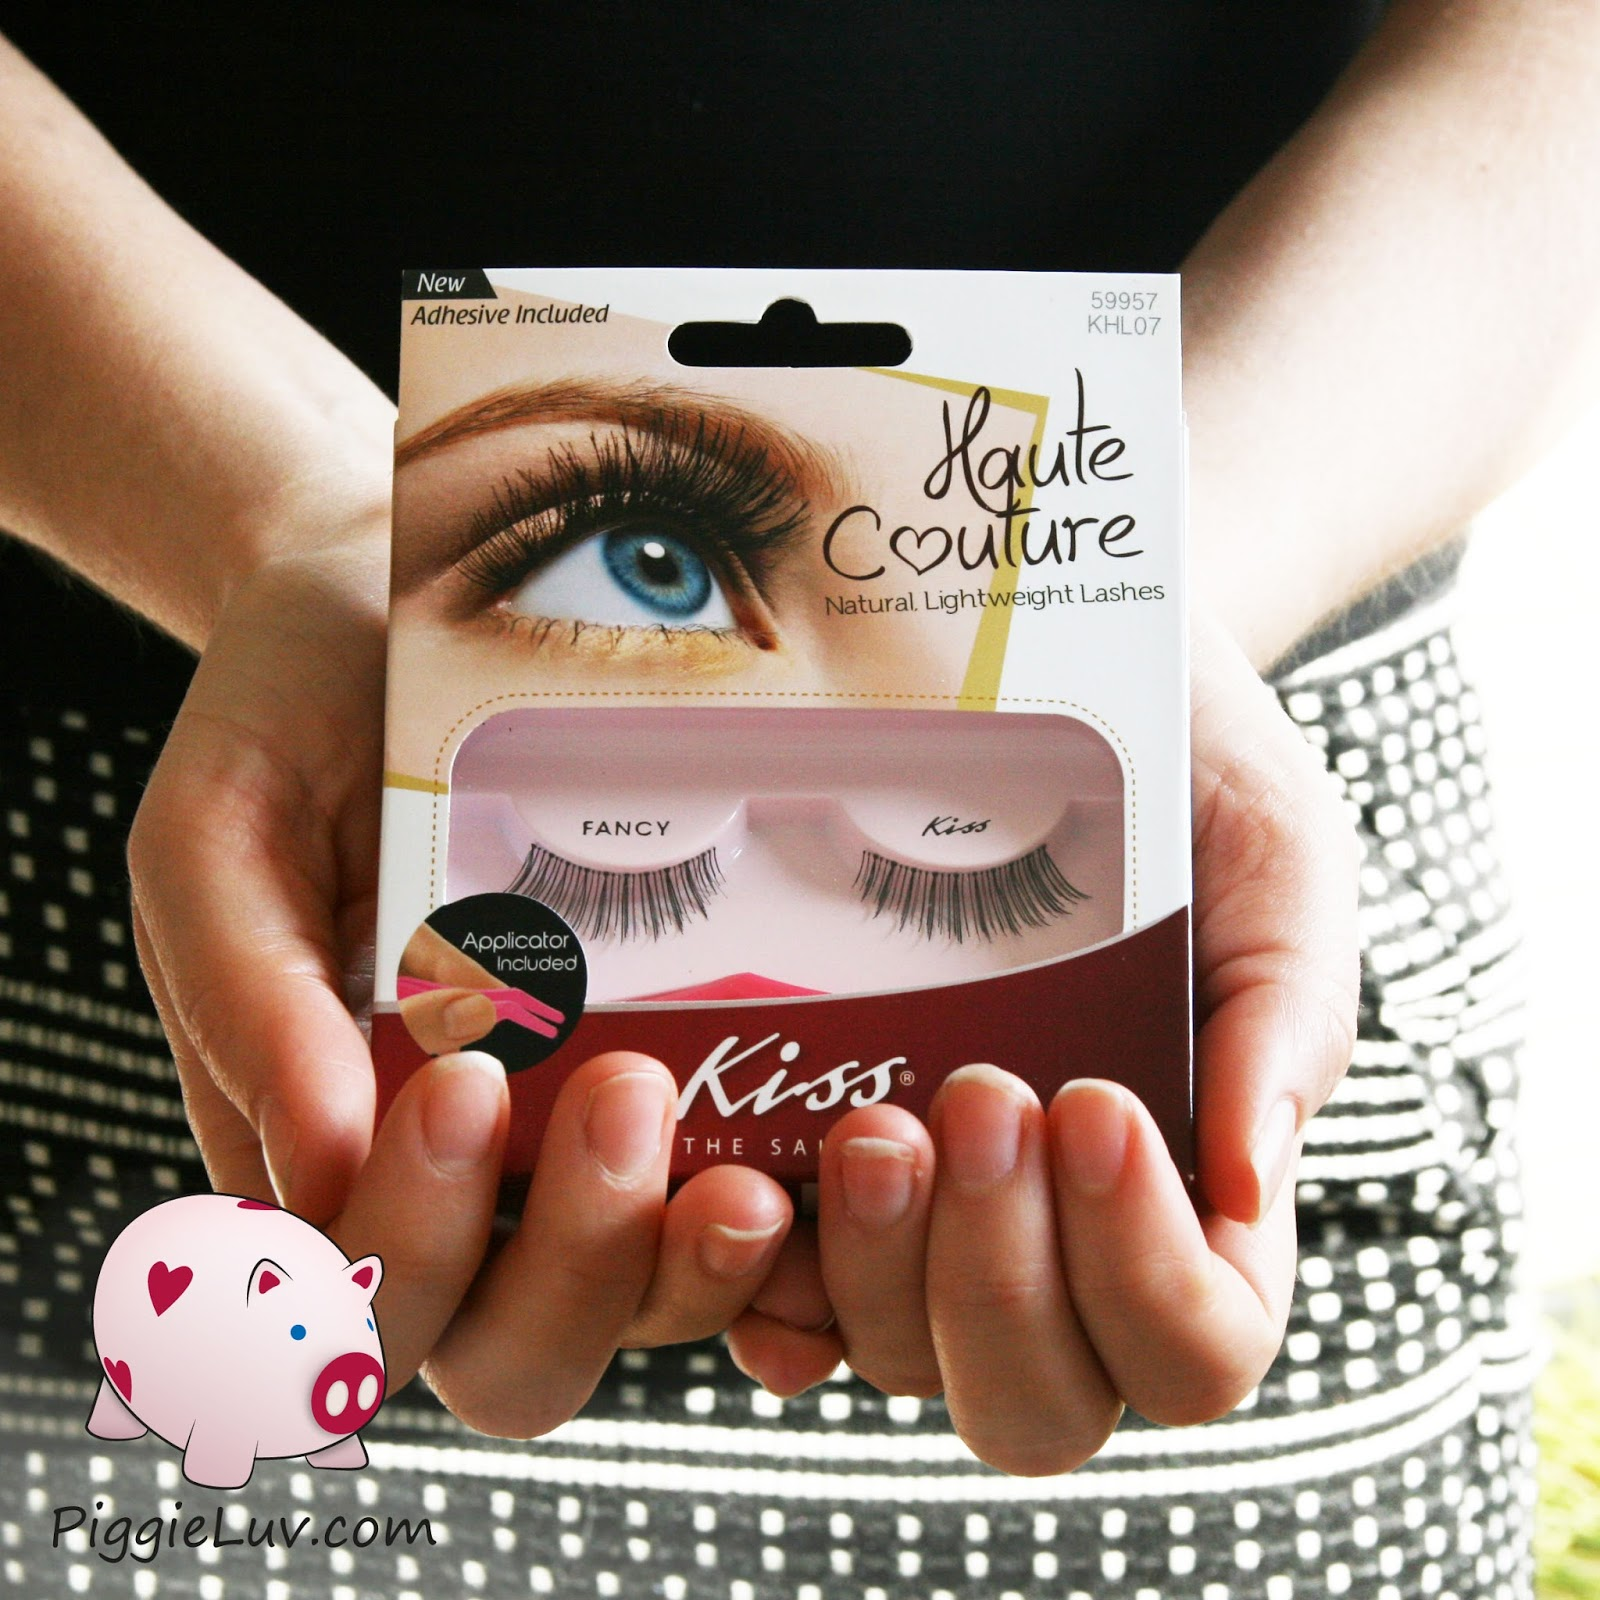 Piggieluv Kiss Haute Couture Fake Eyelashes Plus Some Shampoo Samples